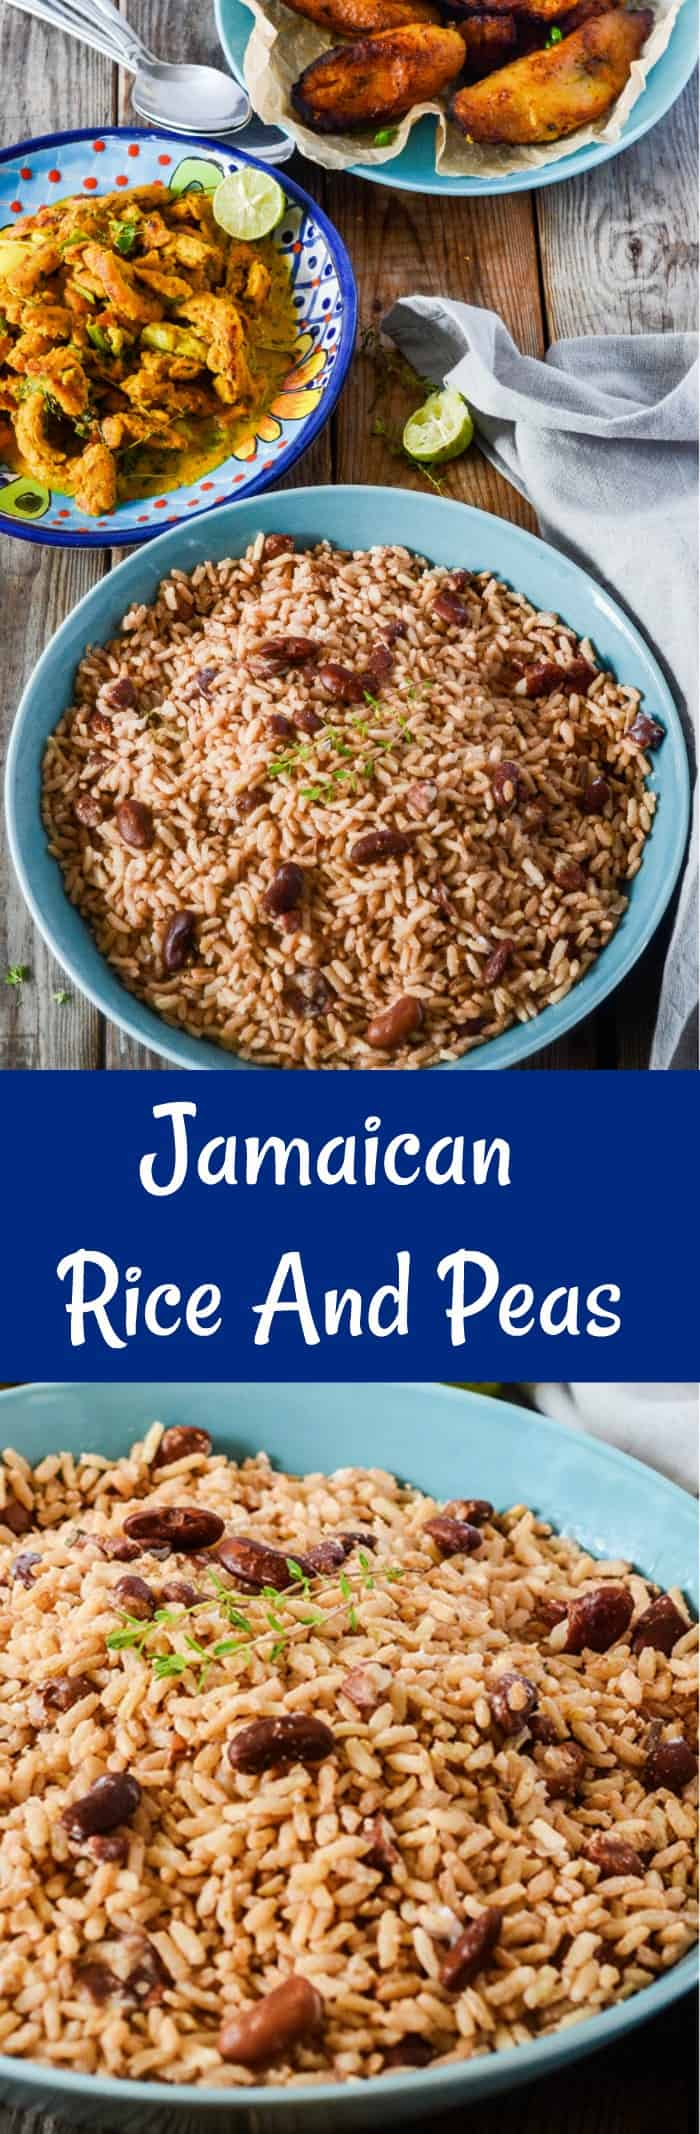 Jamaican Rice And Peas Recipe